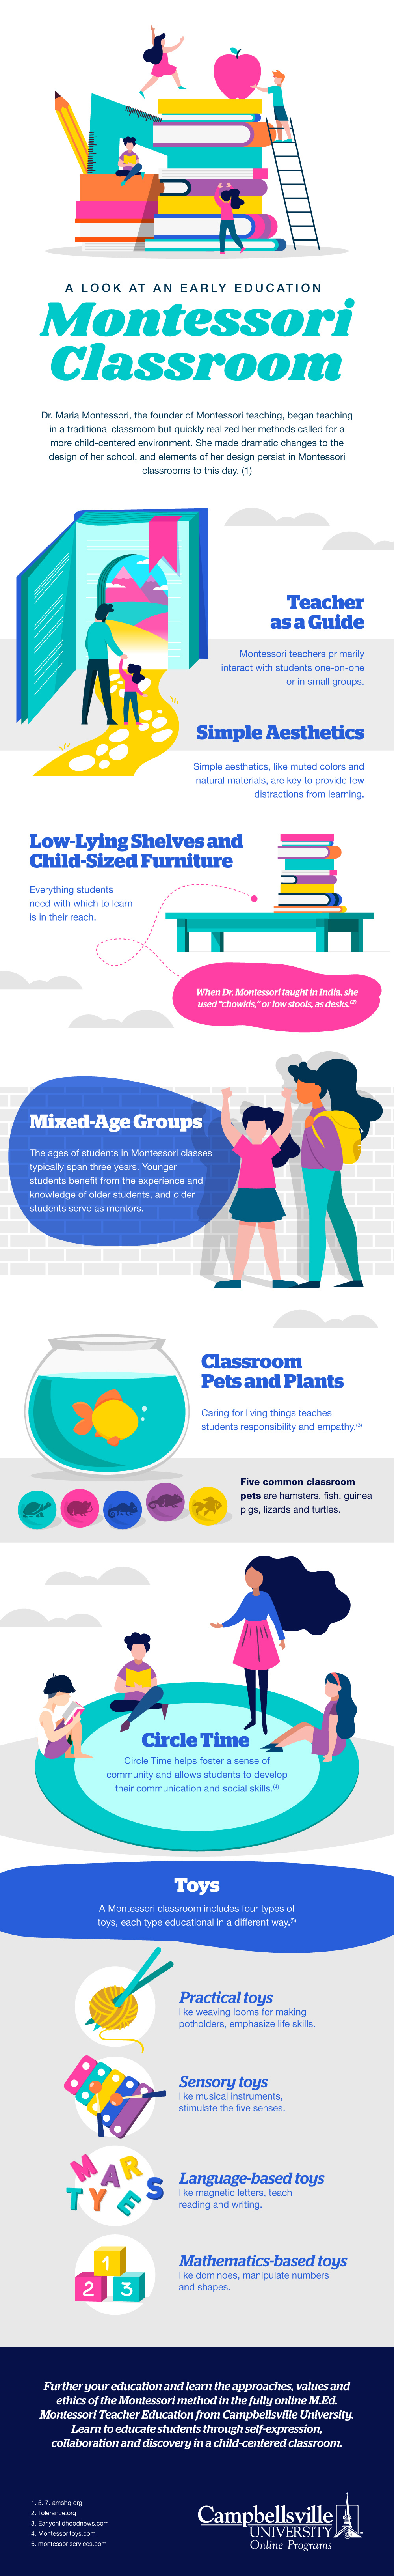 Illustrated infographic showing teachers and children in an early education Montessori classroom.